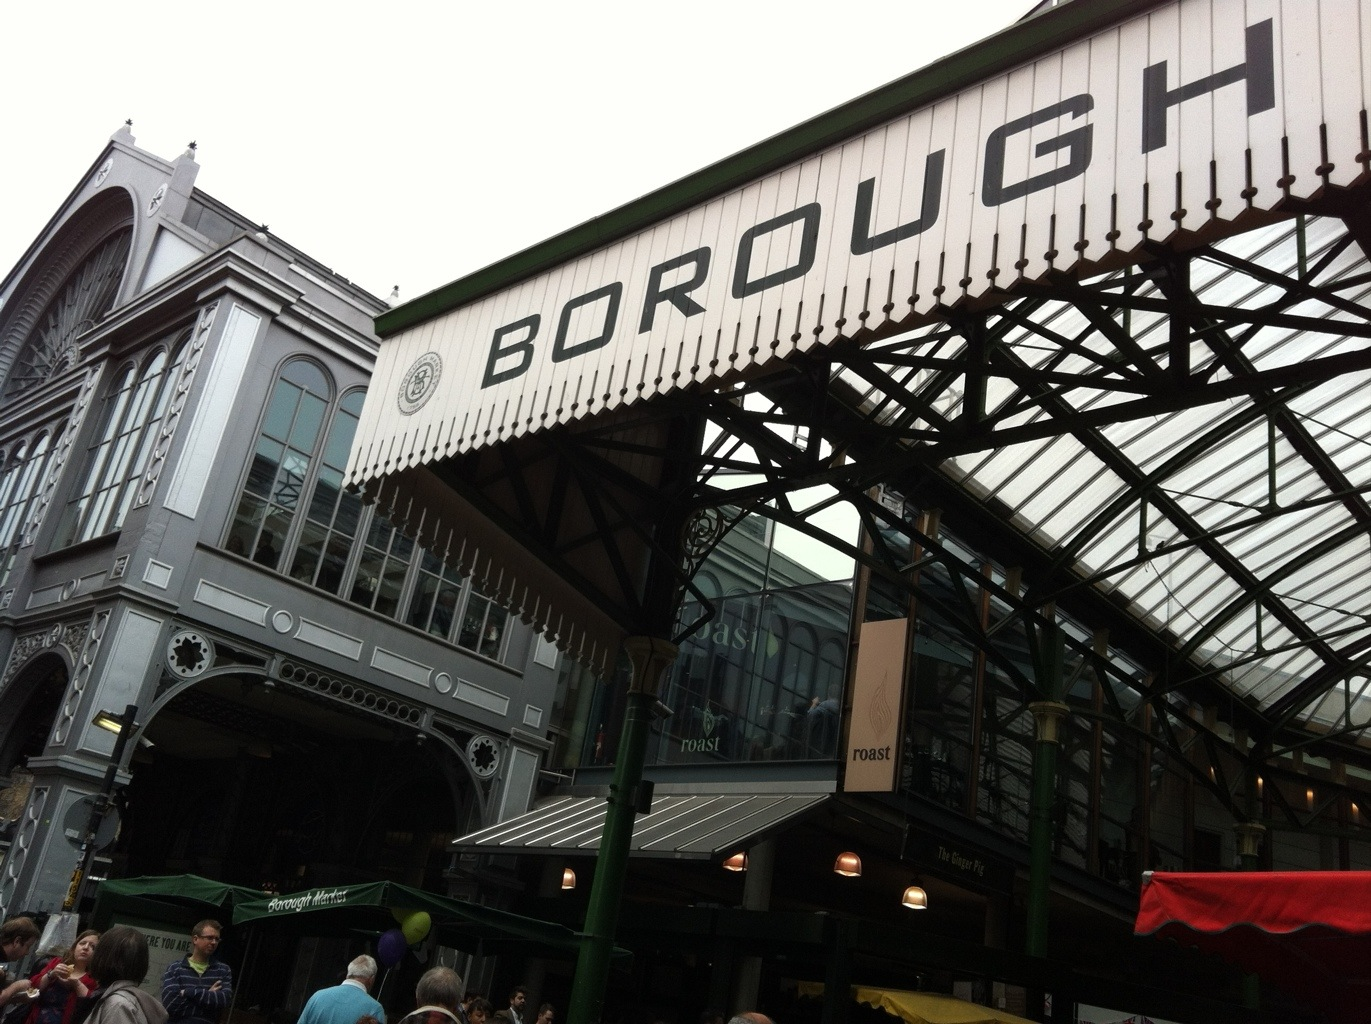 Borough Market by DLCS Management